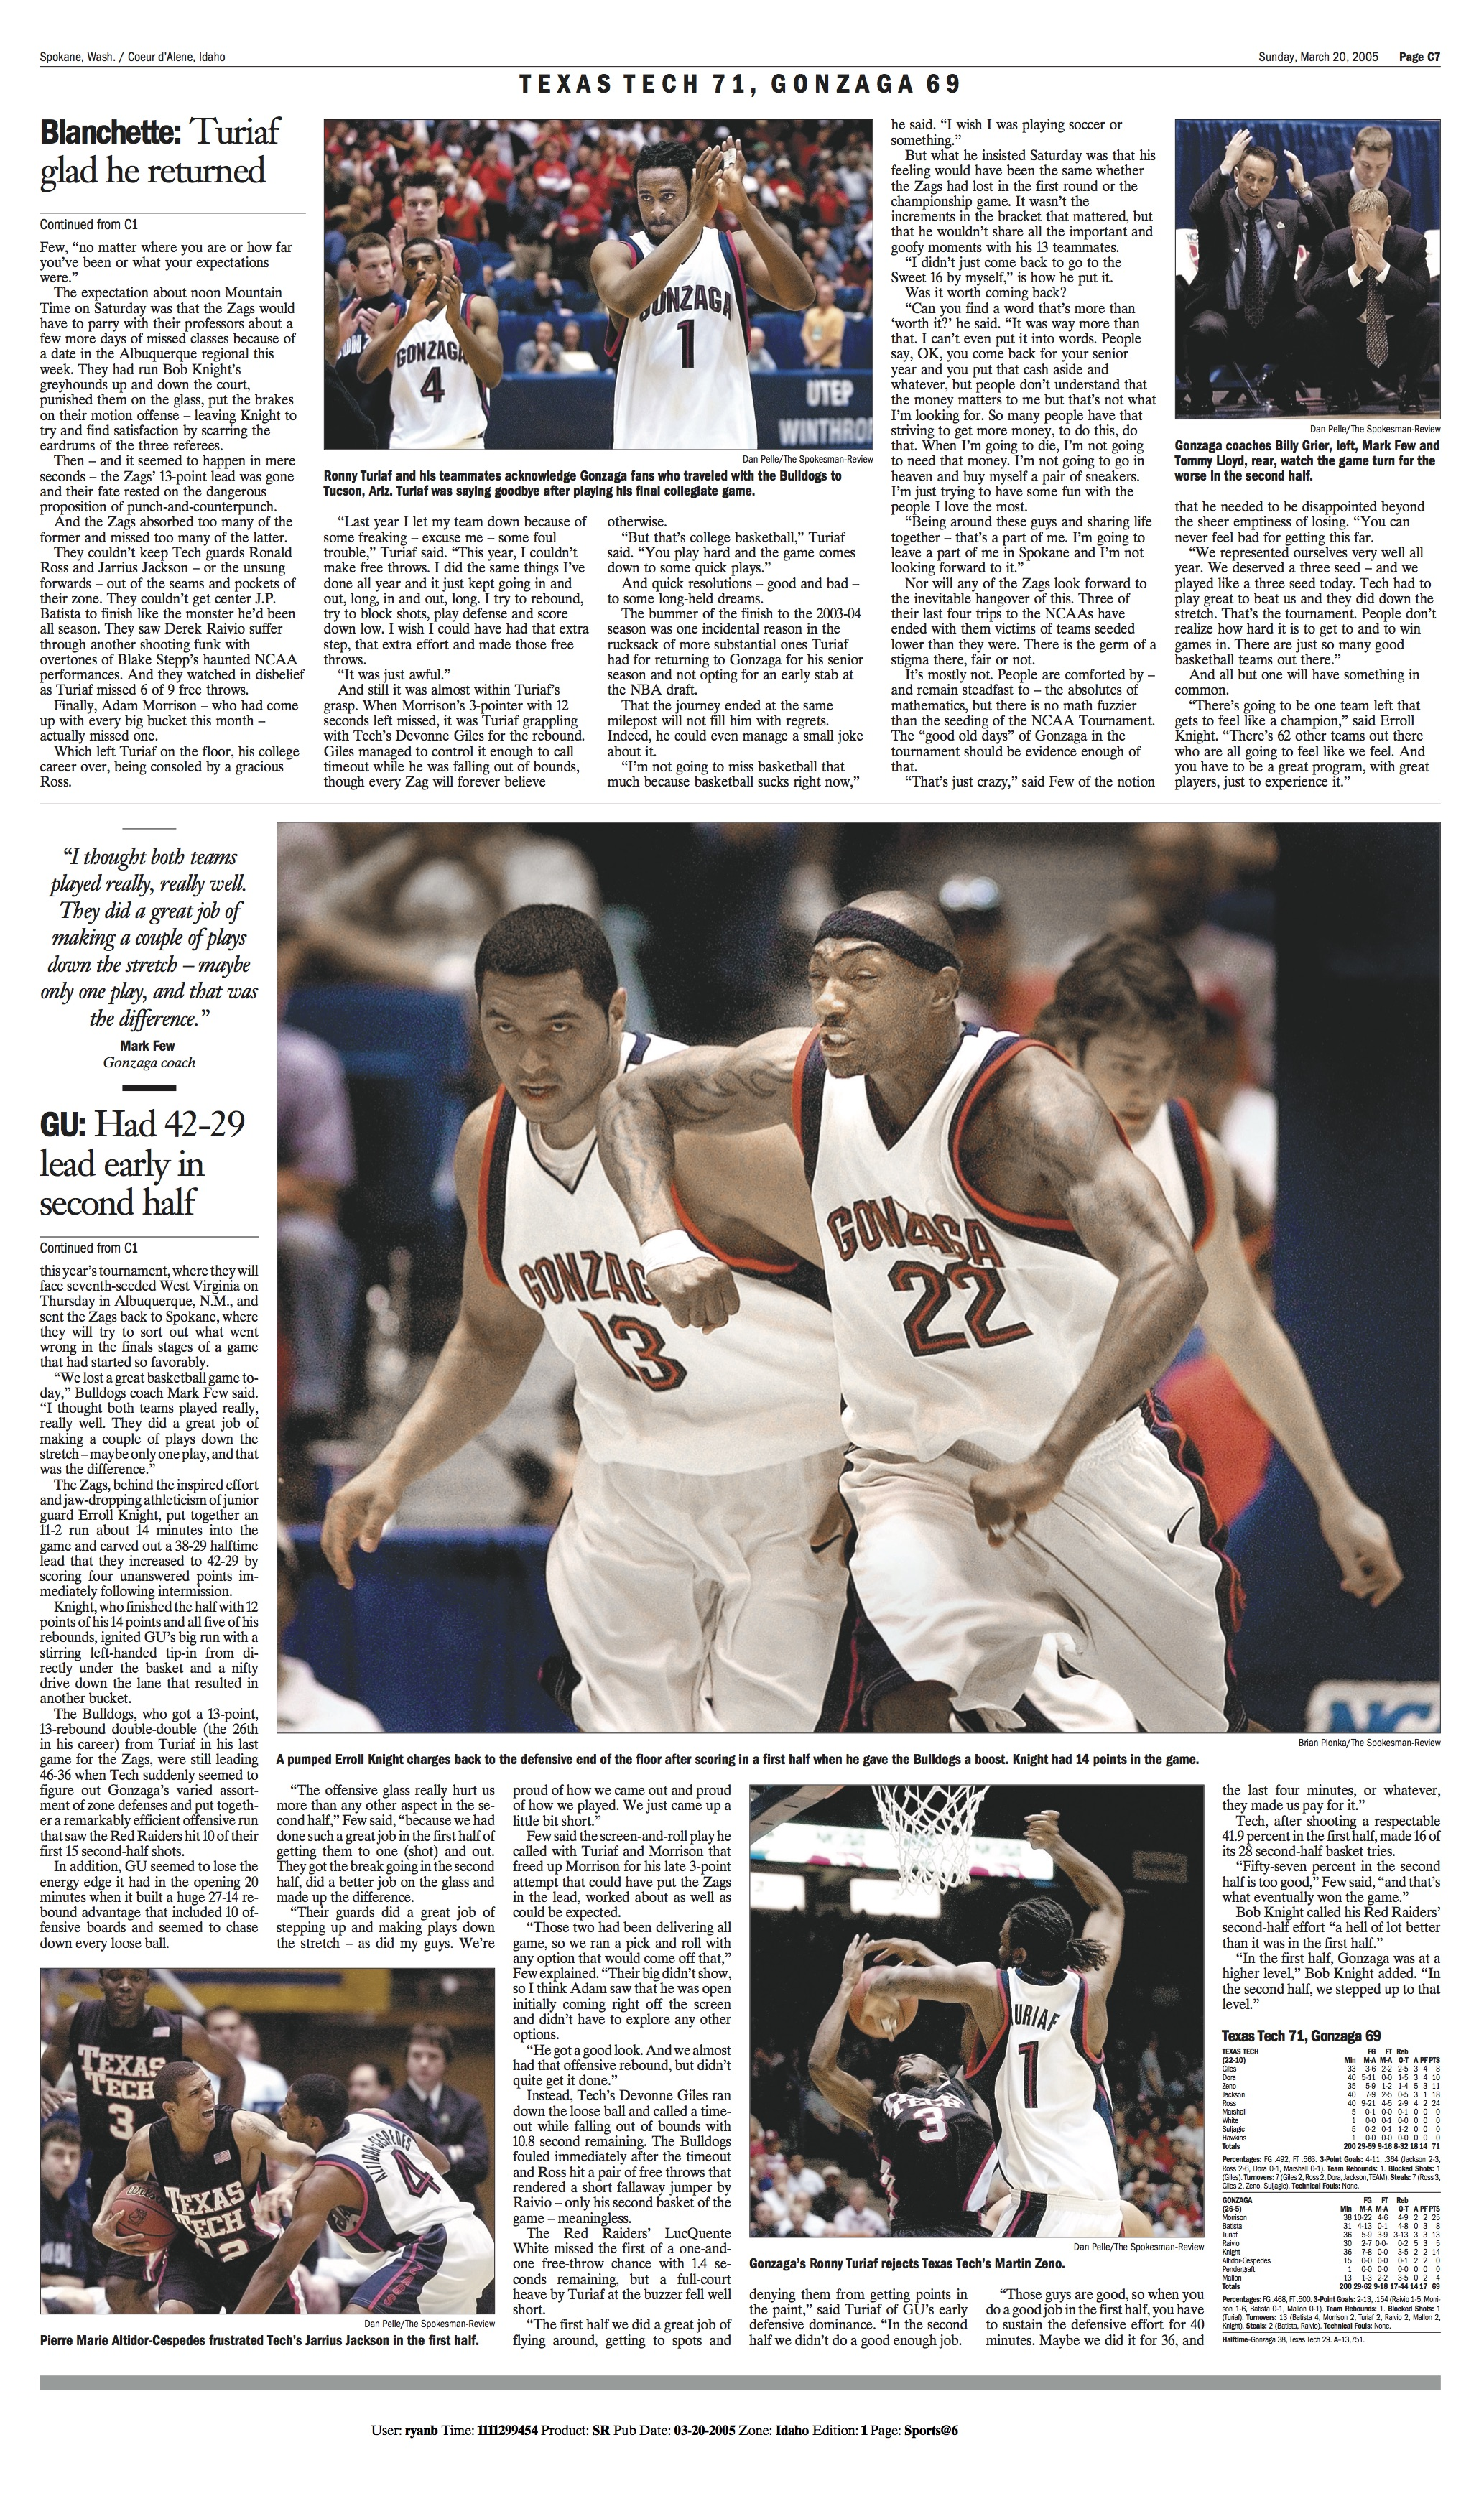 Historic page: Mar. 20, 2005